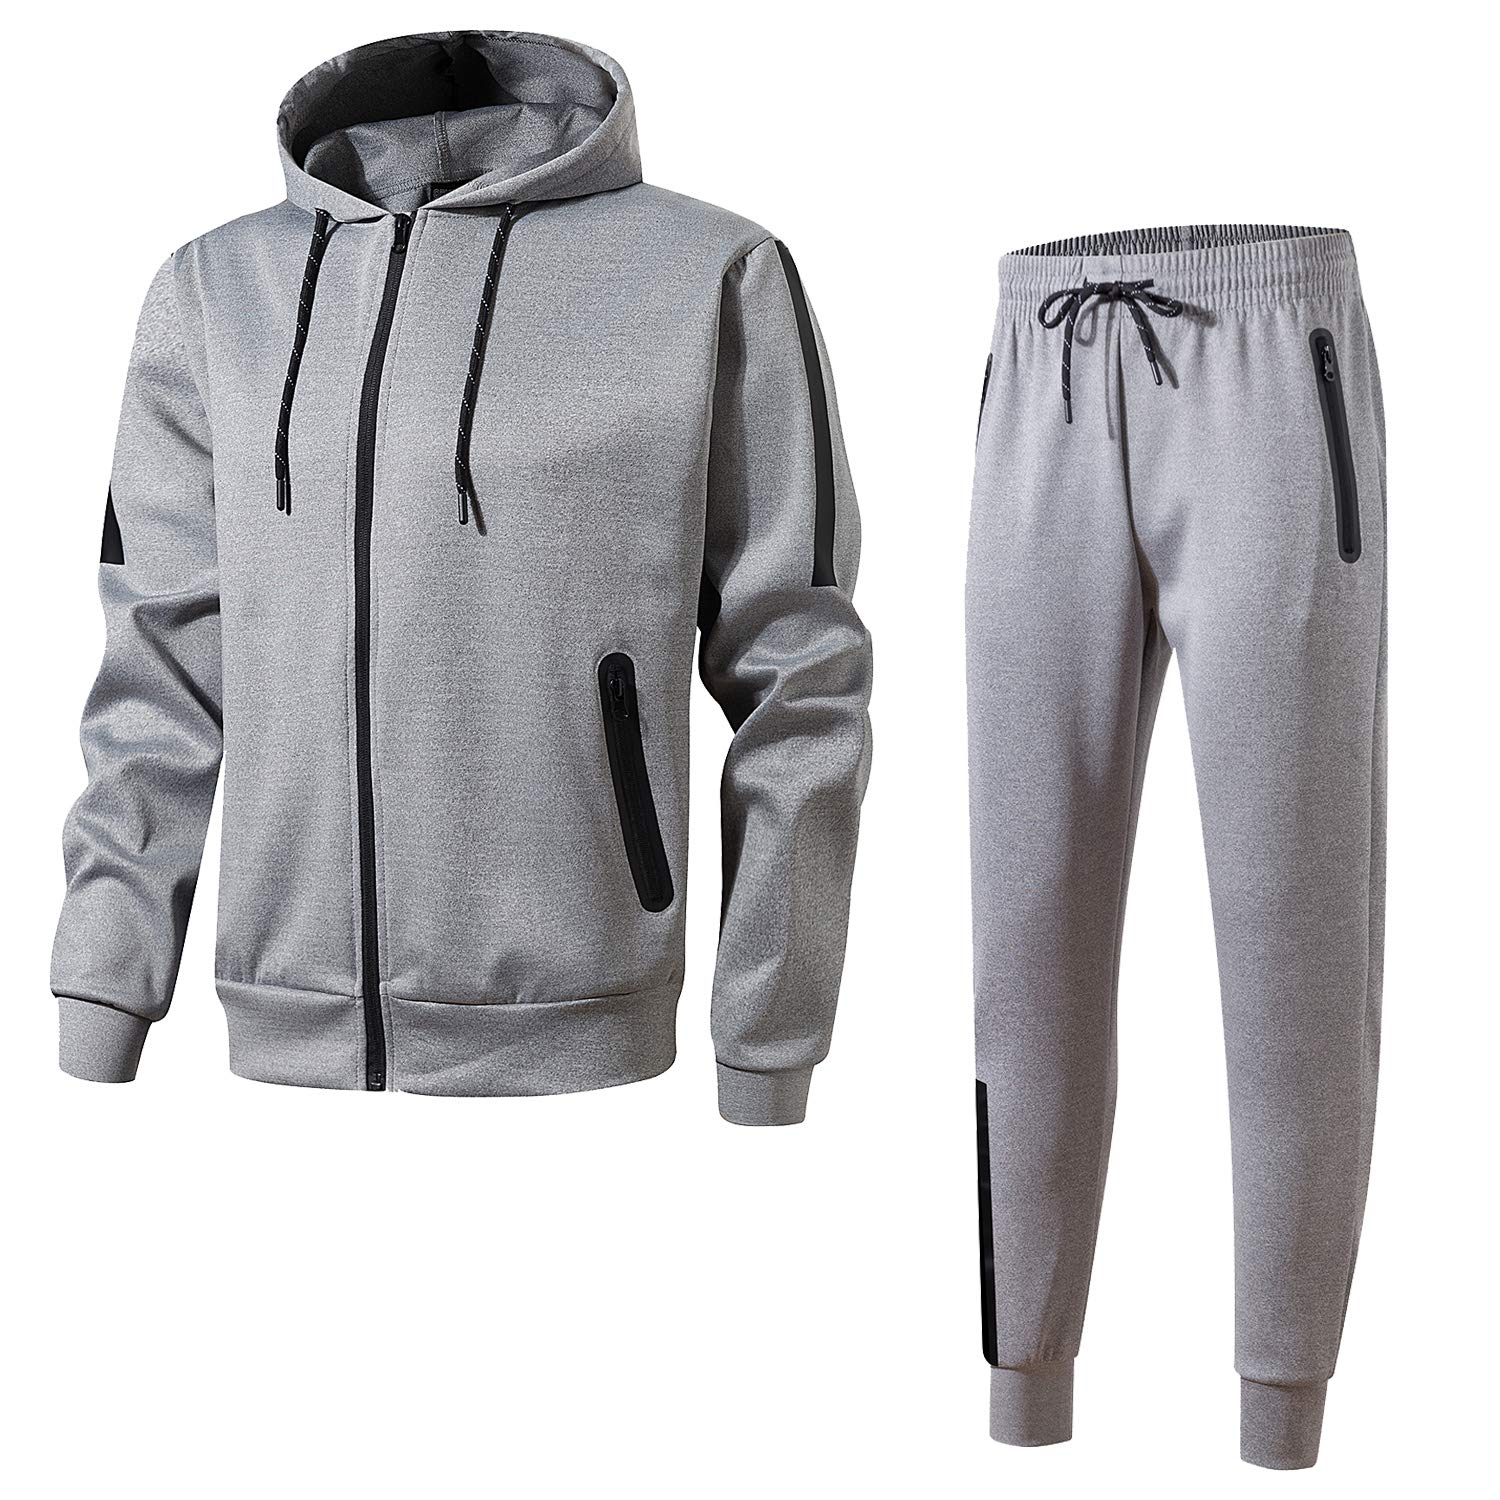 Men's Athletic Casual Pant and Hooded Jacket Sweatsuit Set(L-Grey,S) by URBEX